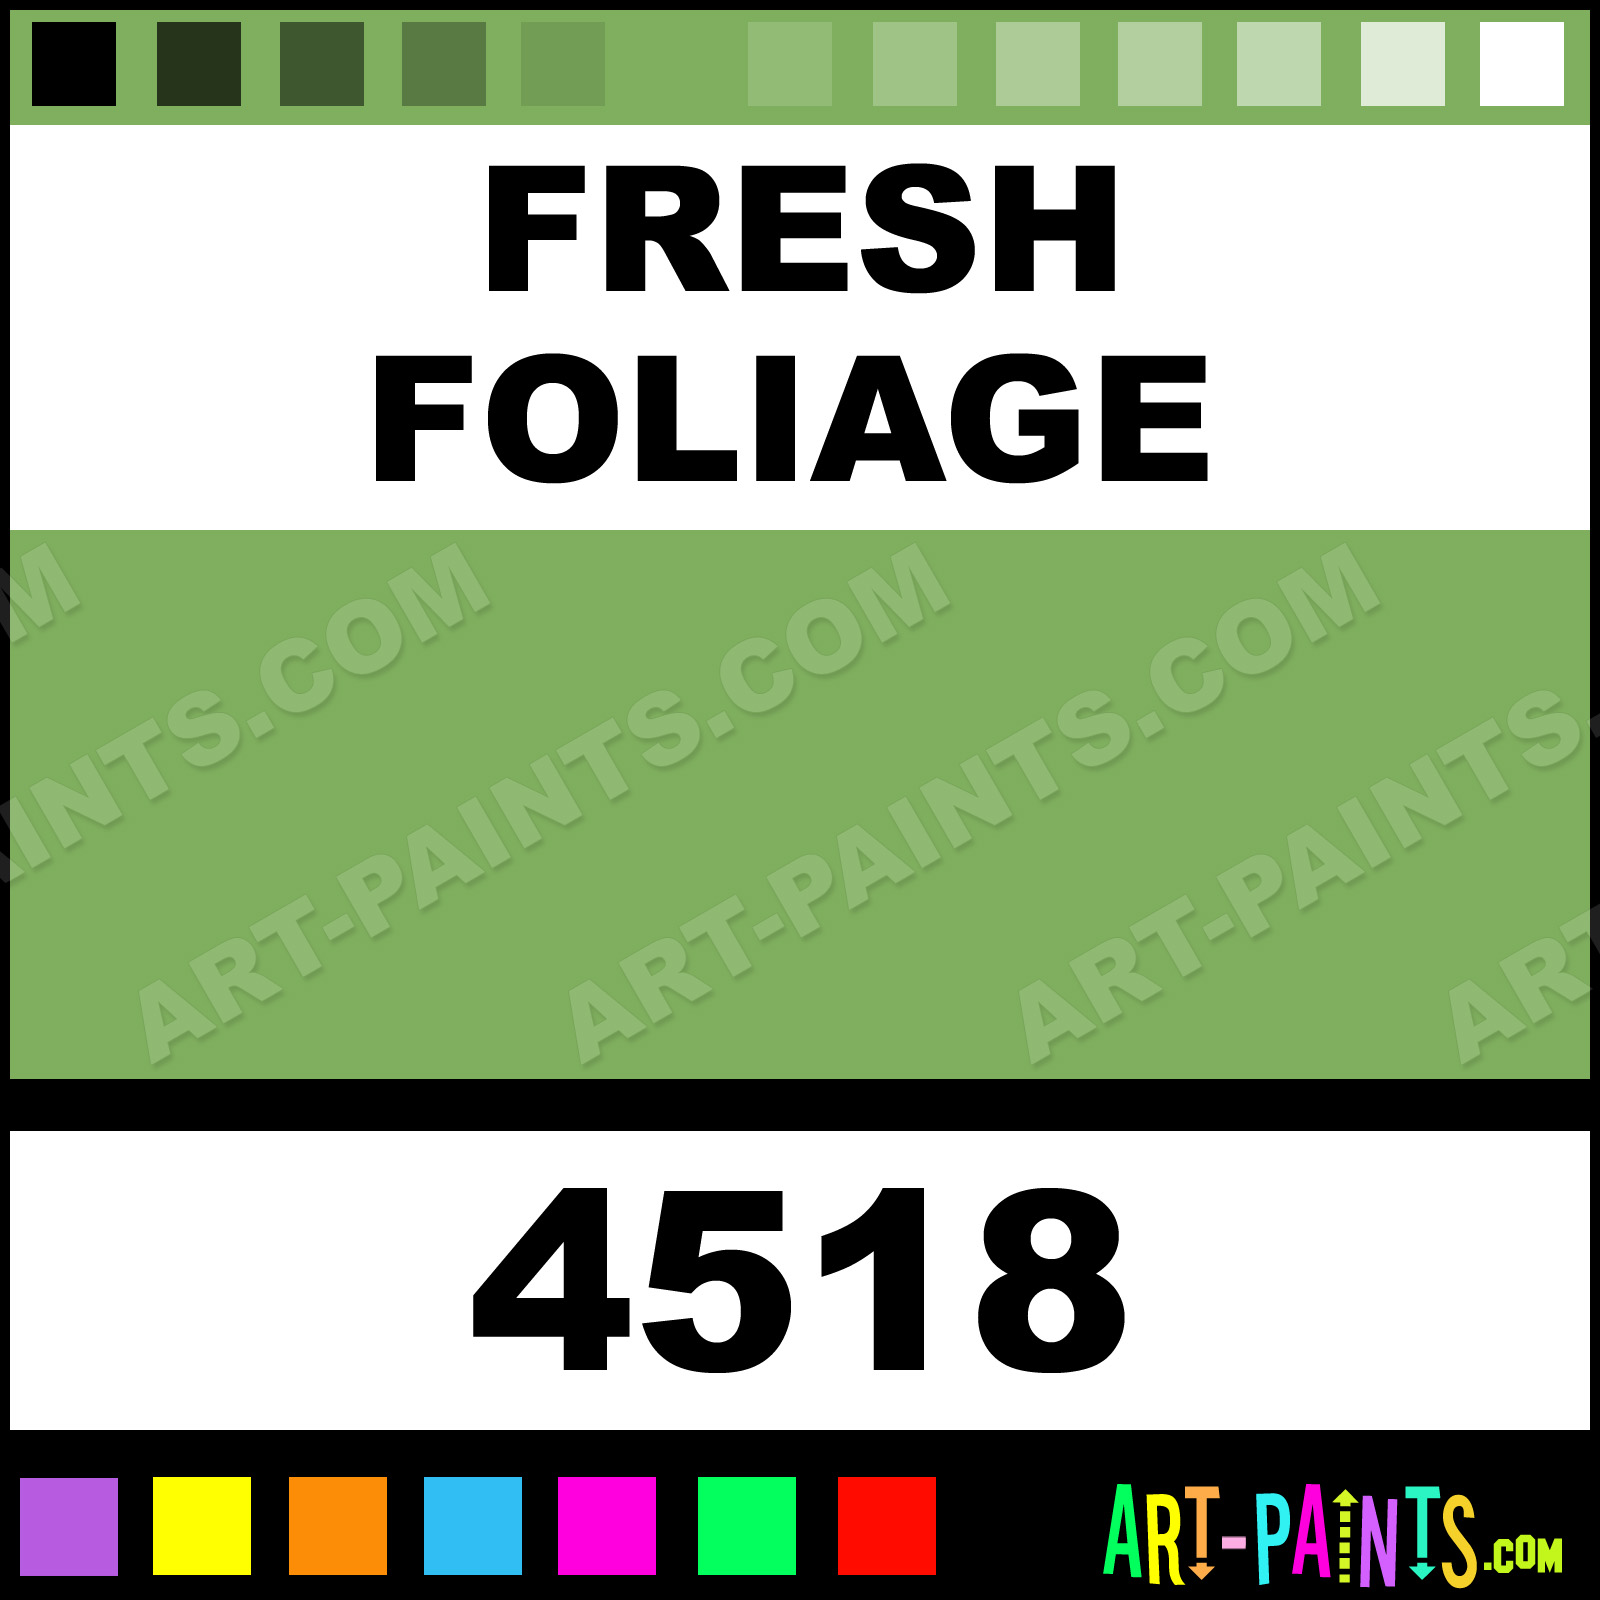 Fresh foliage high definition acrylic paints 4518 for Frash meaning